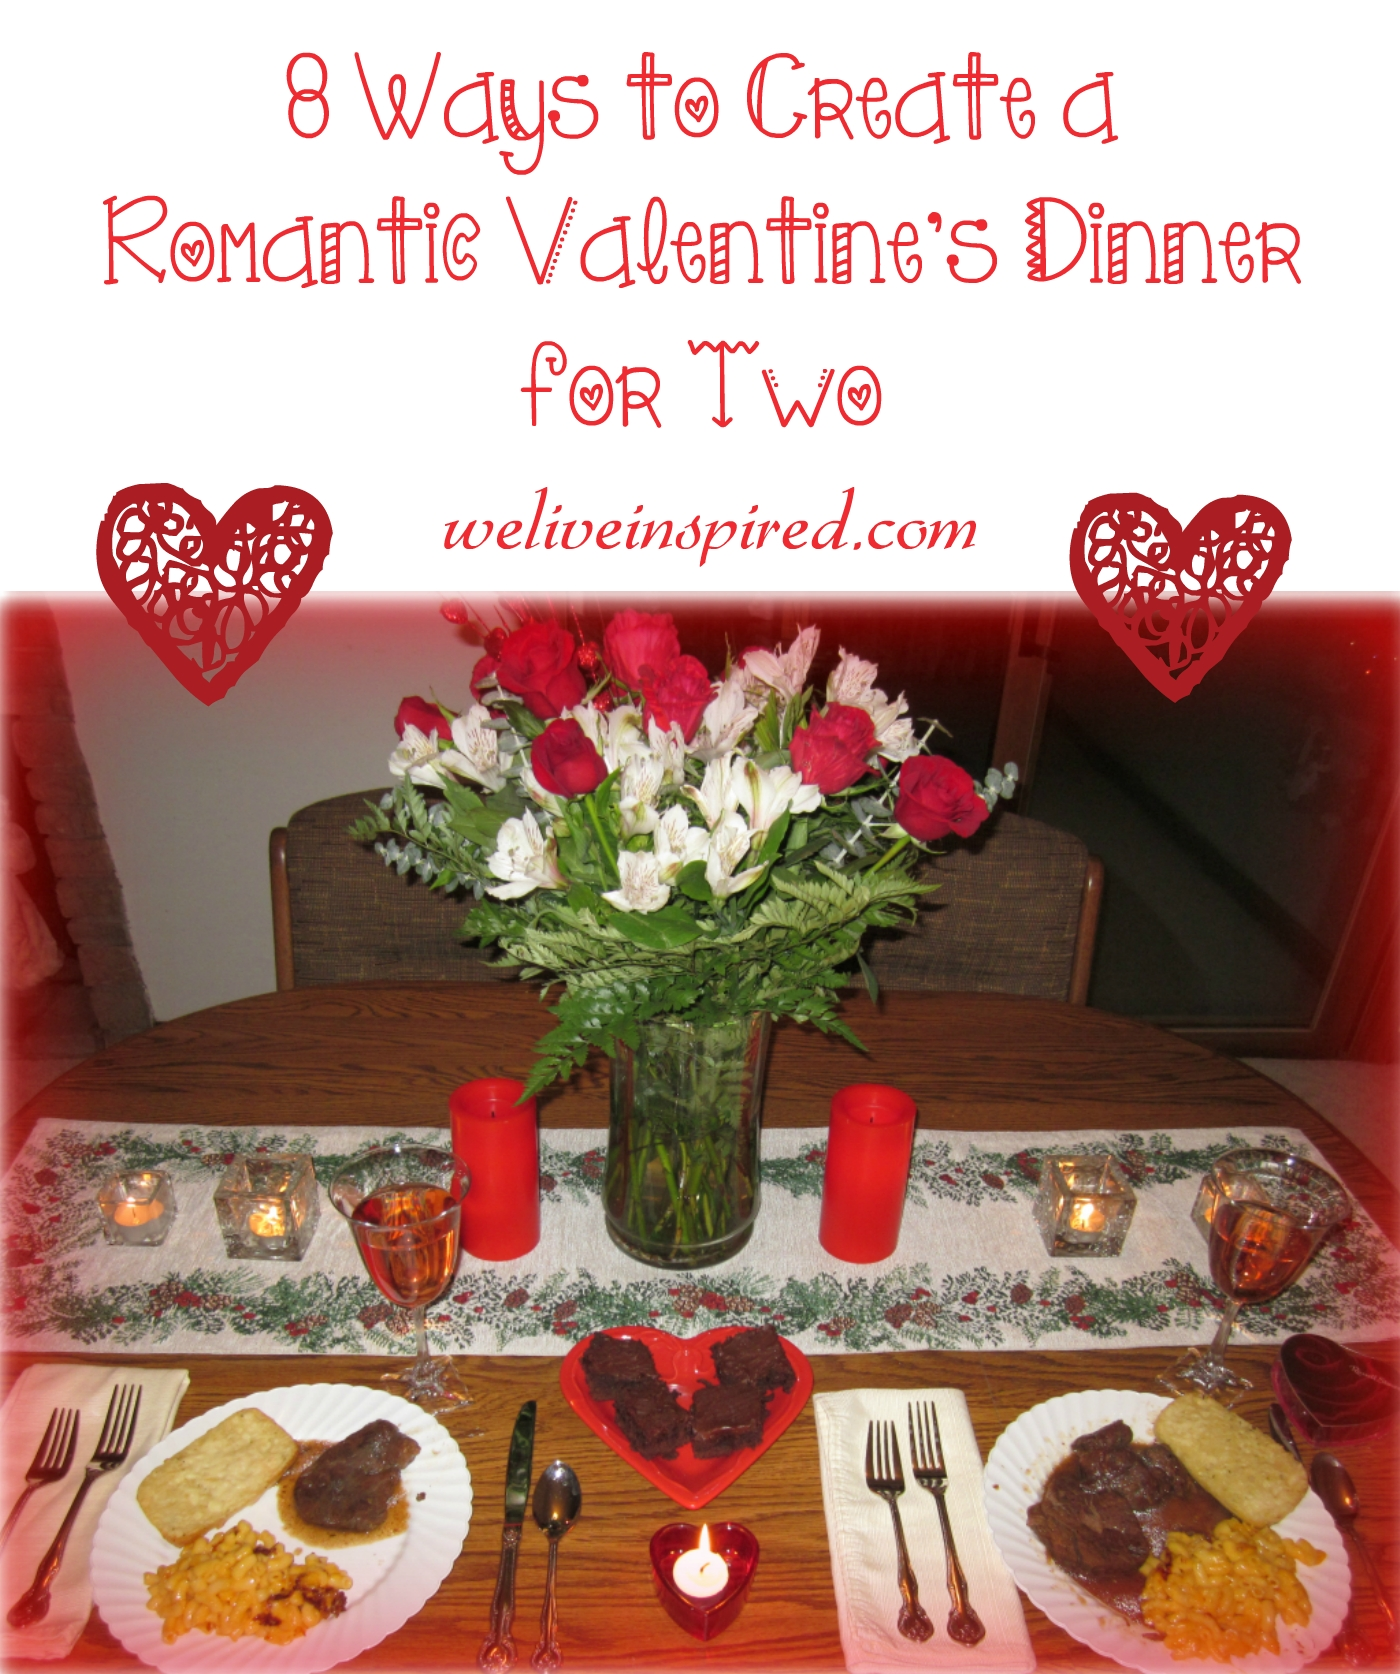 10 Wonderful Romantic Dinner For Two Ideas 8 ways to create a romantic valentines day dinner for two we live 1 2020